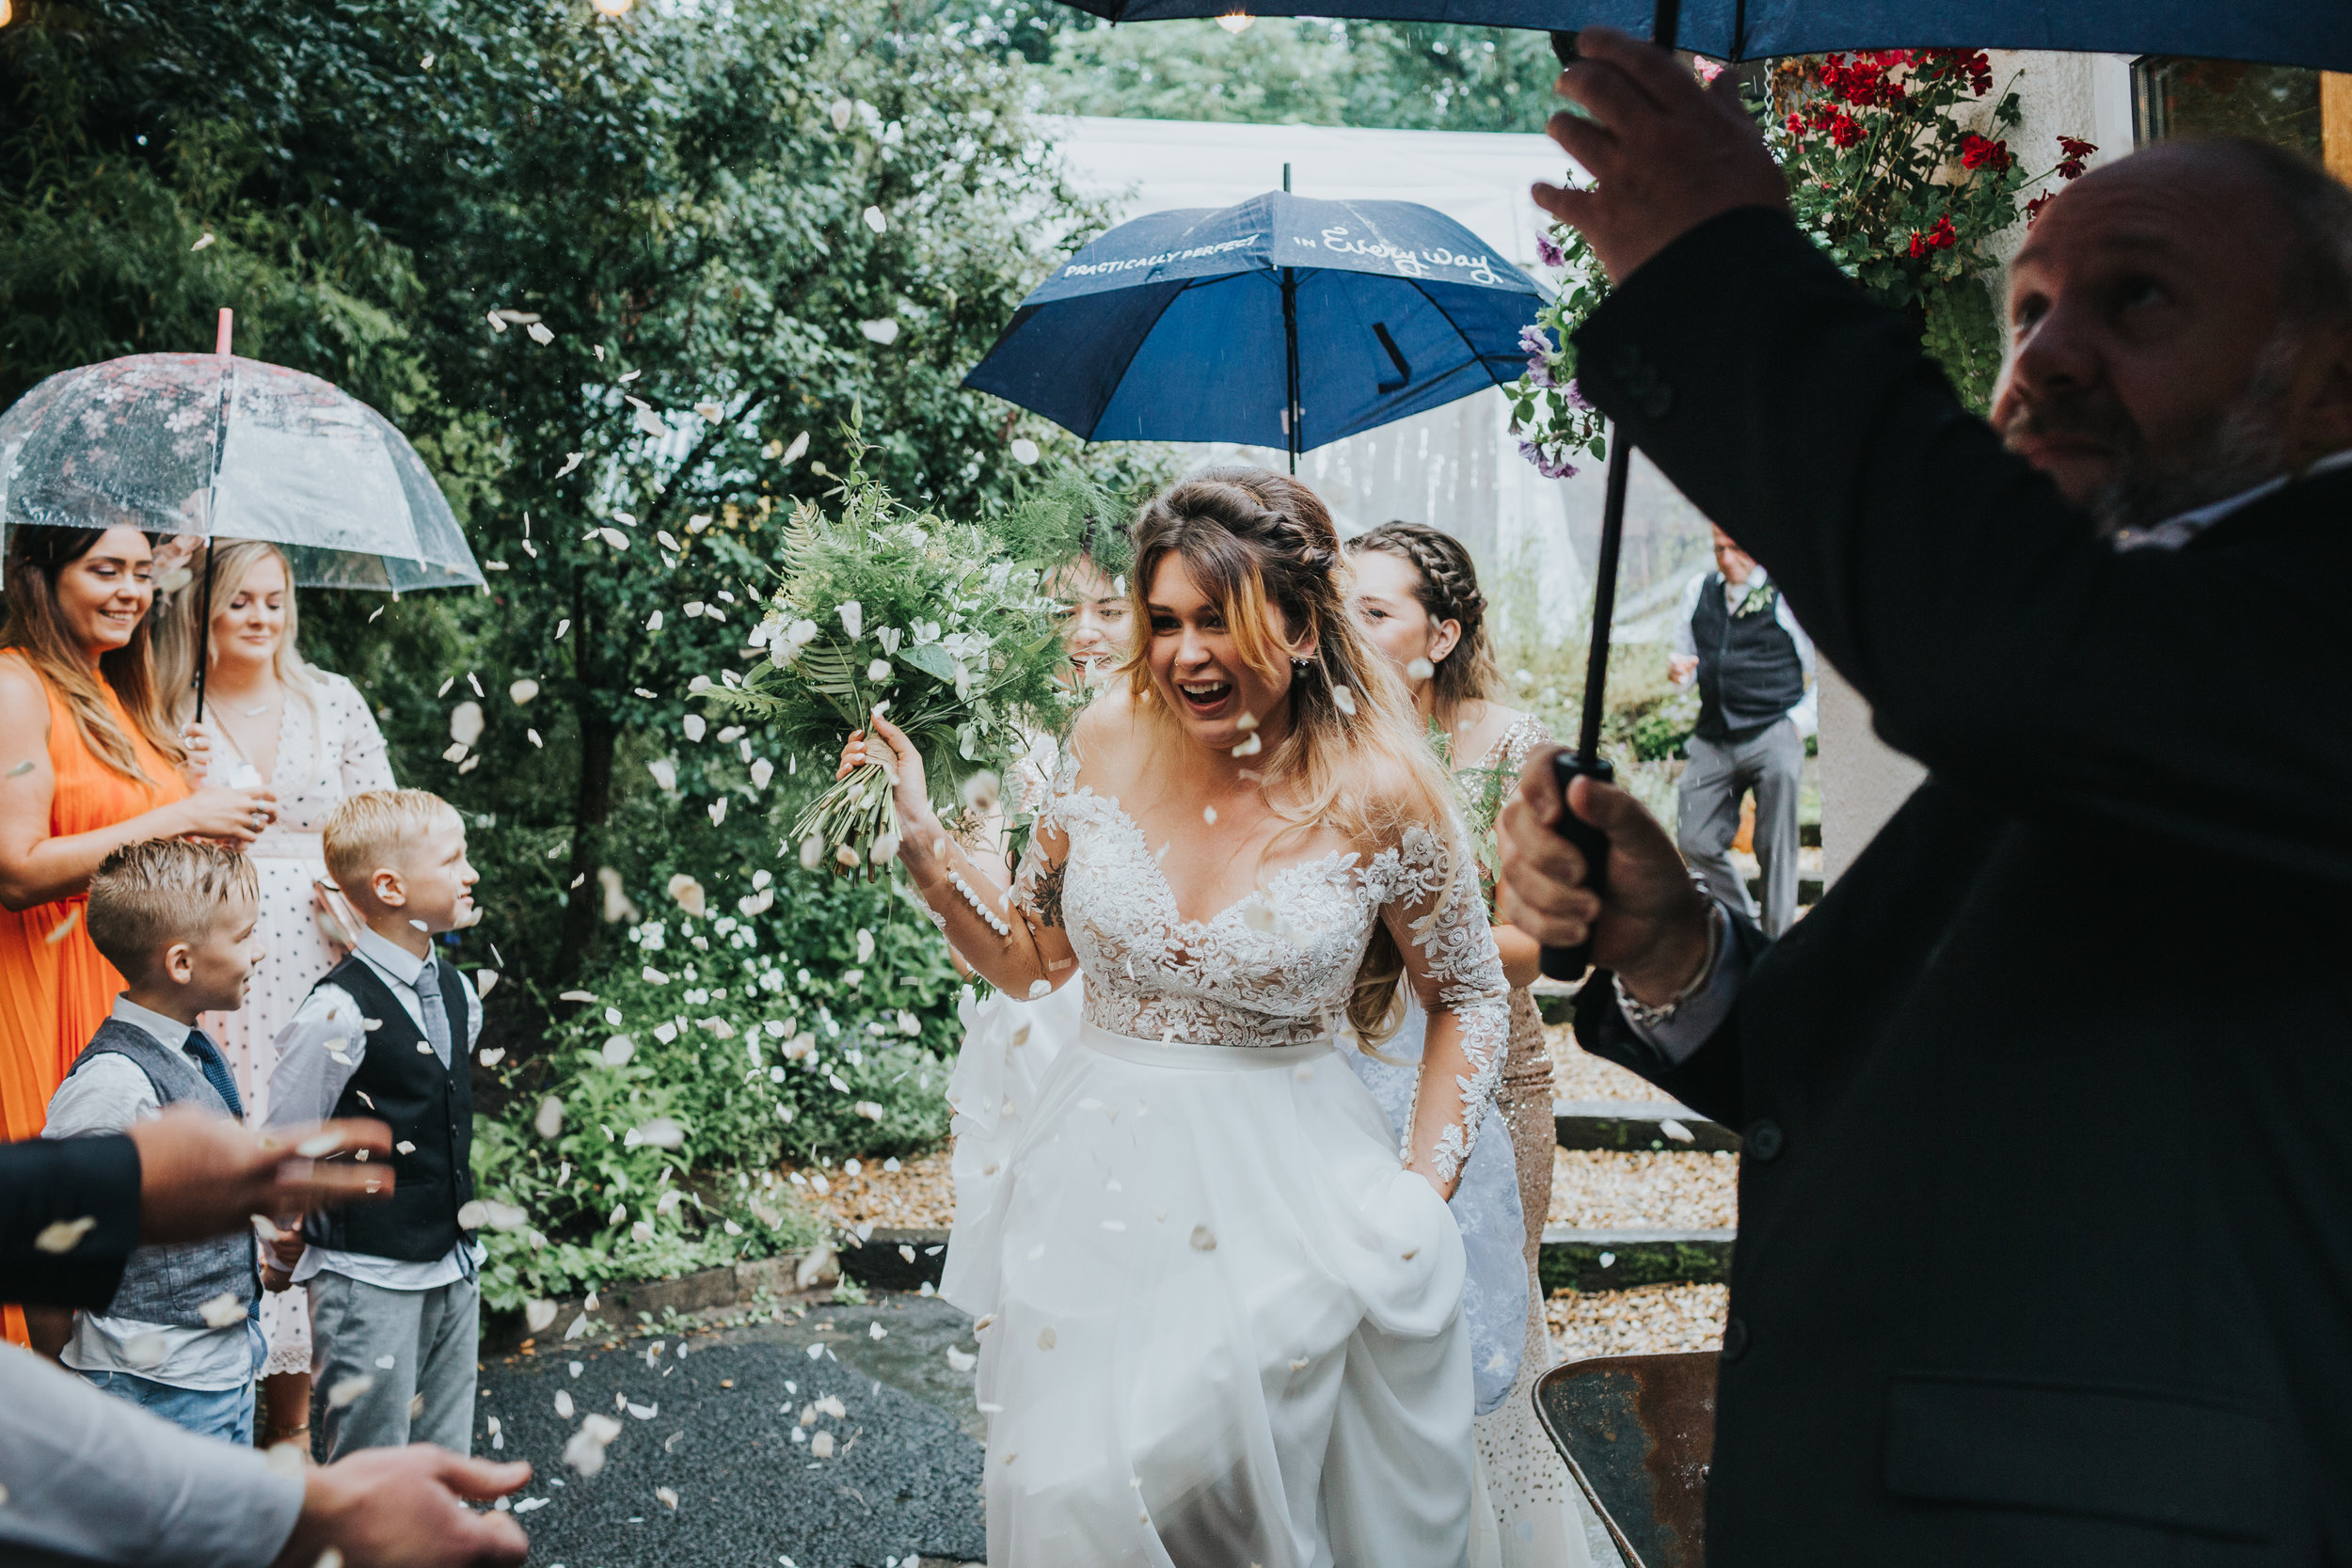 Bride makes her way out under a sea of brollies held for her by wedding guests as they throw confetti.